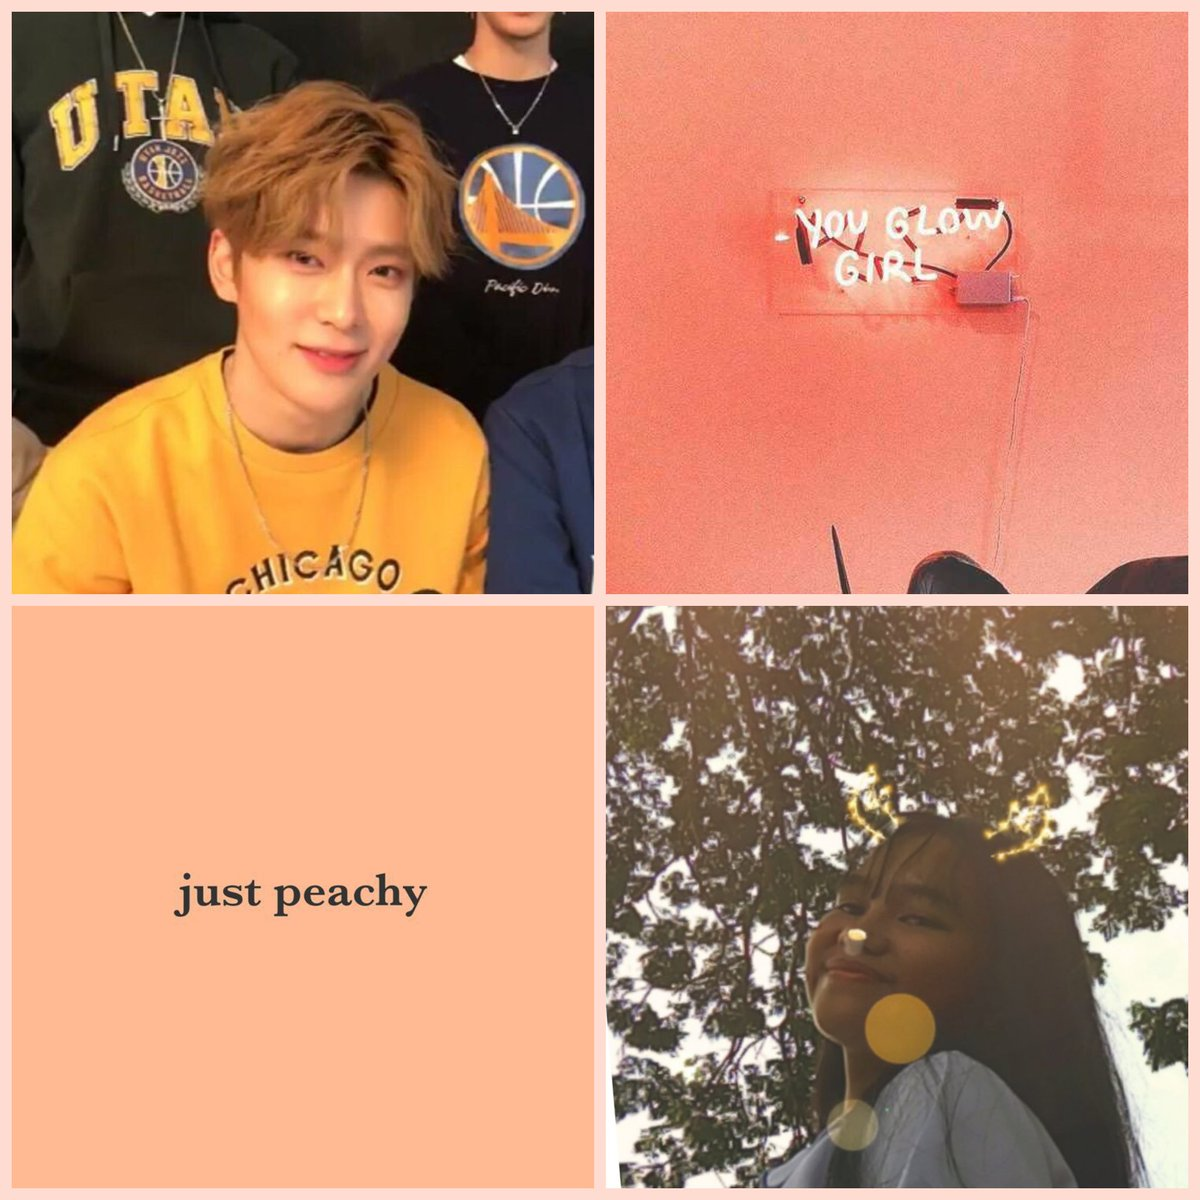 ↳𝚢𝚘𝚞 𝚑𝚊𝚟𝚎 𝚖𝚎, 𝚞𝚗𝚝𝚒𝚕 𝚎𝚟𝚎𝚛𝚢 𝚜𝚝𝚊𝚛 𝚒𝚗 𝚝𝚑𝚎 𝚞𝚗𝚒𝚟𝚎𝚛𝚜𝚎 𝚍𝚒𝚎𝚜, 𝚢𝚘𝚞 𝚑𝚊𝚟𝚎 𝚖𝚎. #NCTzenSelcaDay @NCTsmtown_127 @NCTsmtown @NCTsmtown_DREAM @WayV_official